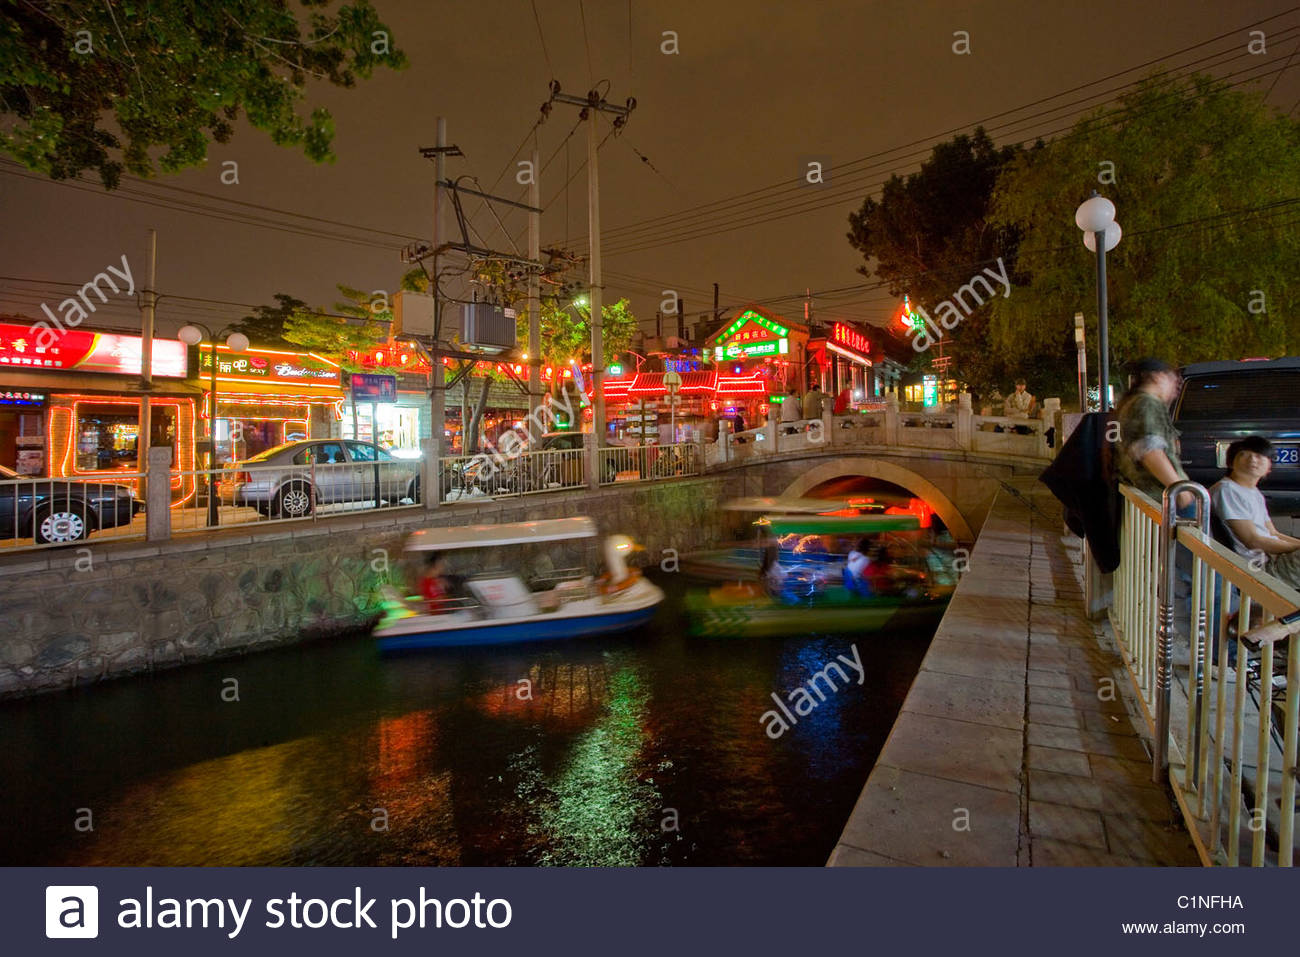 Beijing City, Shichahai, Hutong, Silver Ingot Bridge, Dongcheng District, China Stock Photo